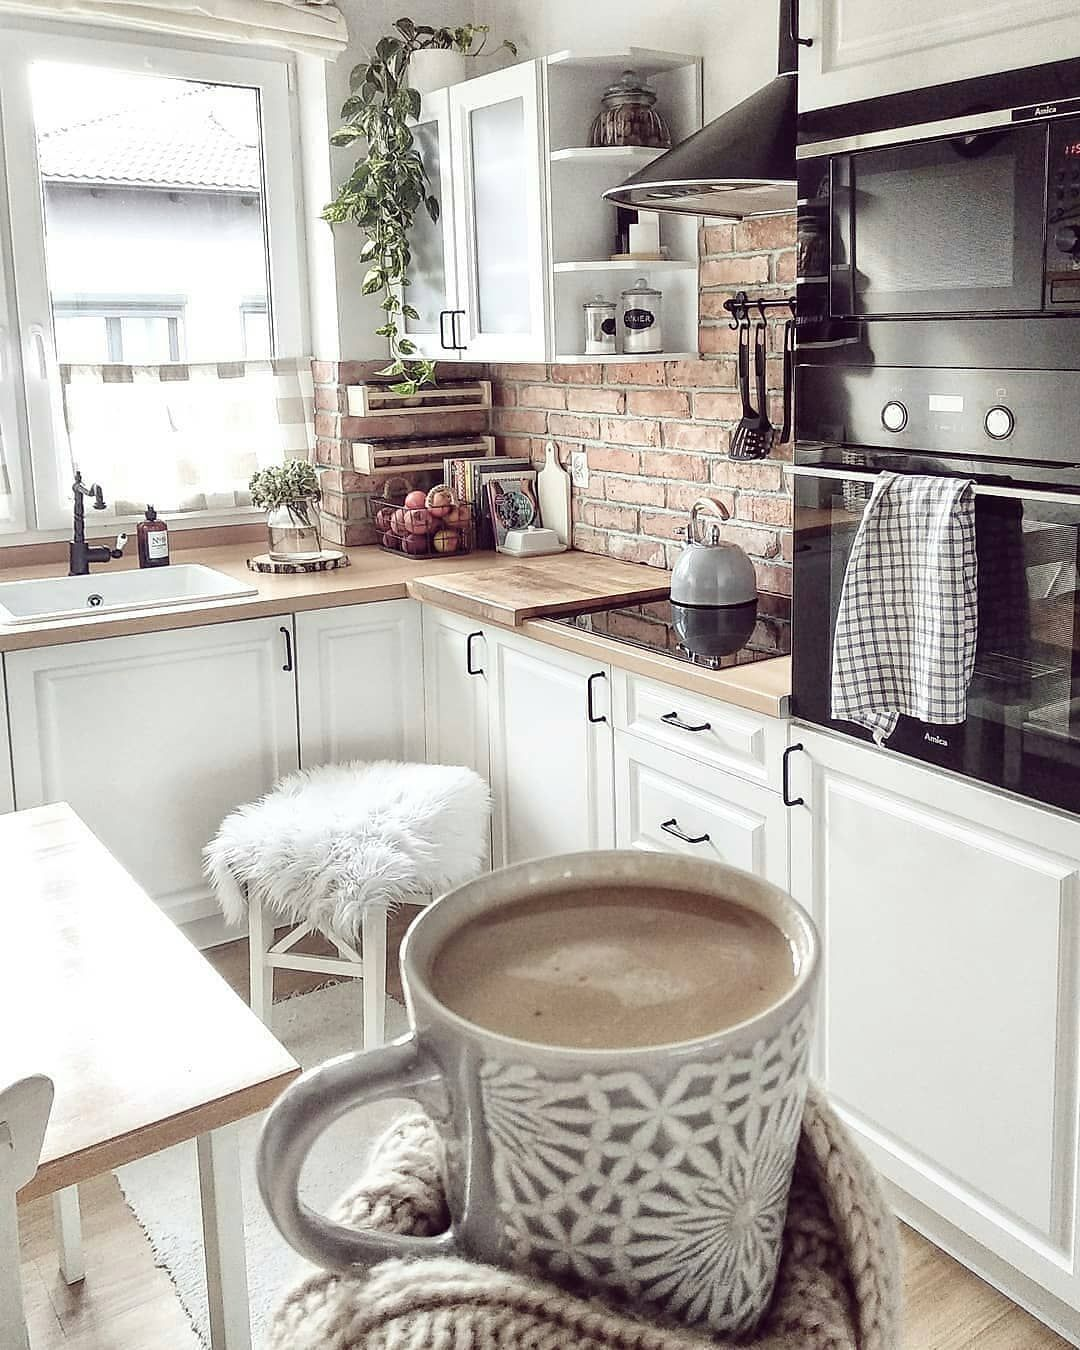 35 Great Ideas for Decorating a Kitchen 2019 - Page 19 of 37